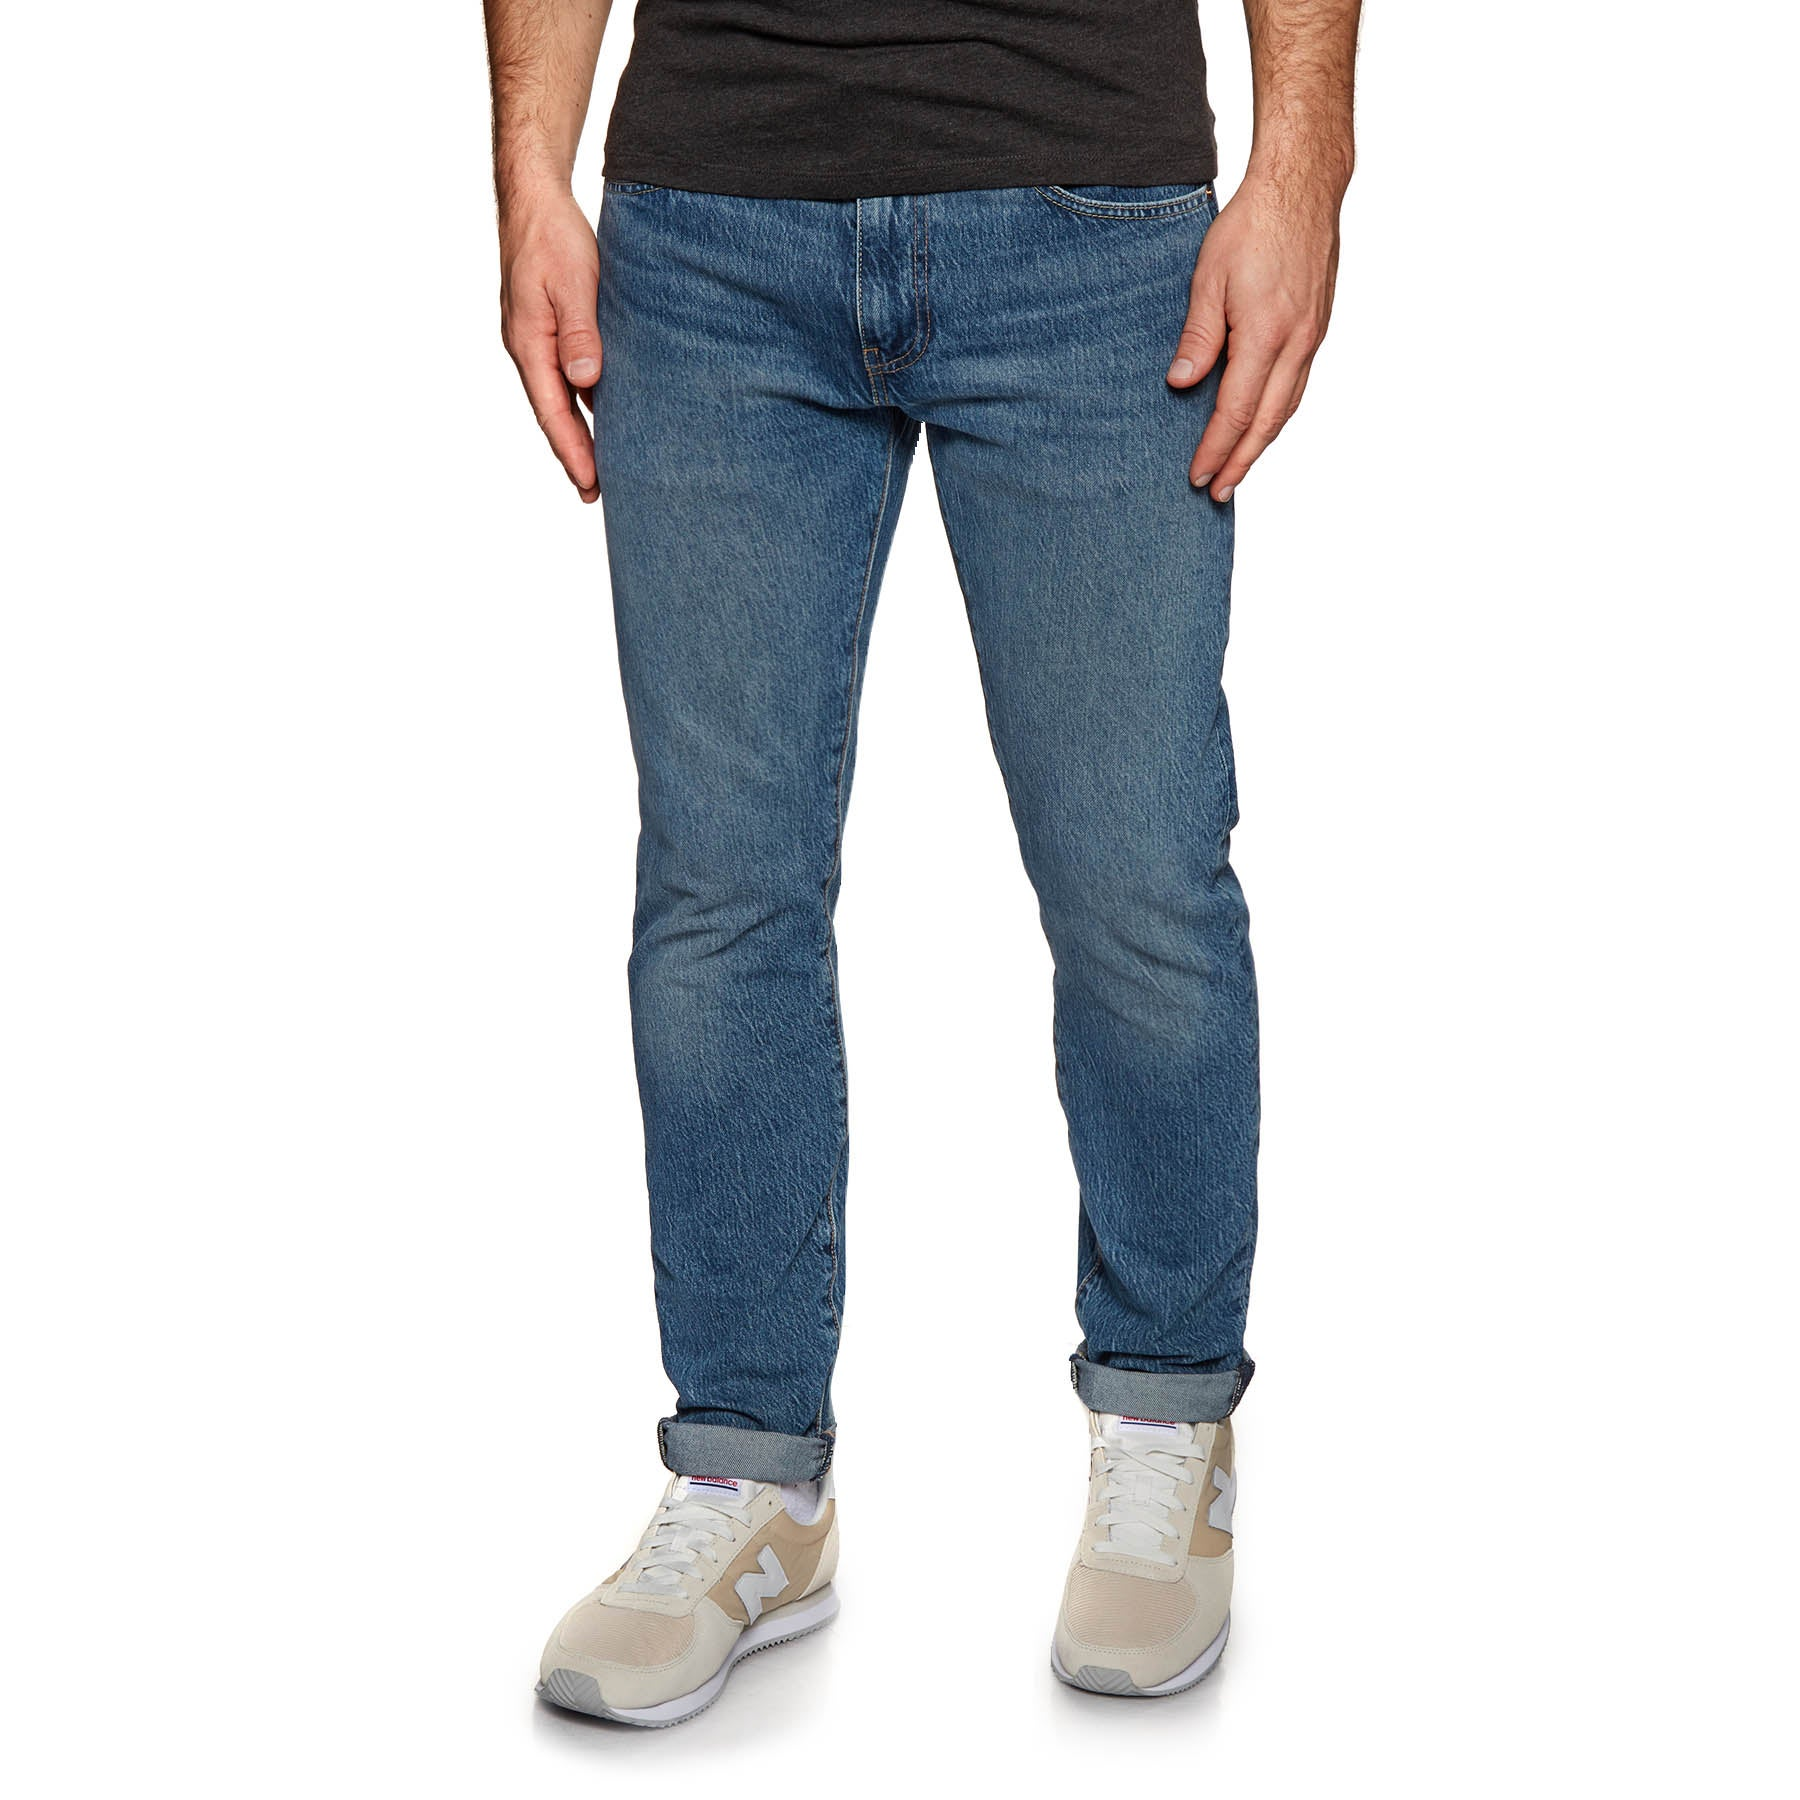 855f76bbb16 Levis 512 Slim Taper Fit Jeans - Free Delivery options on All Orders ...